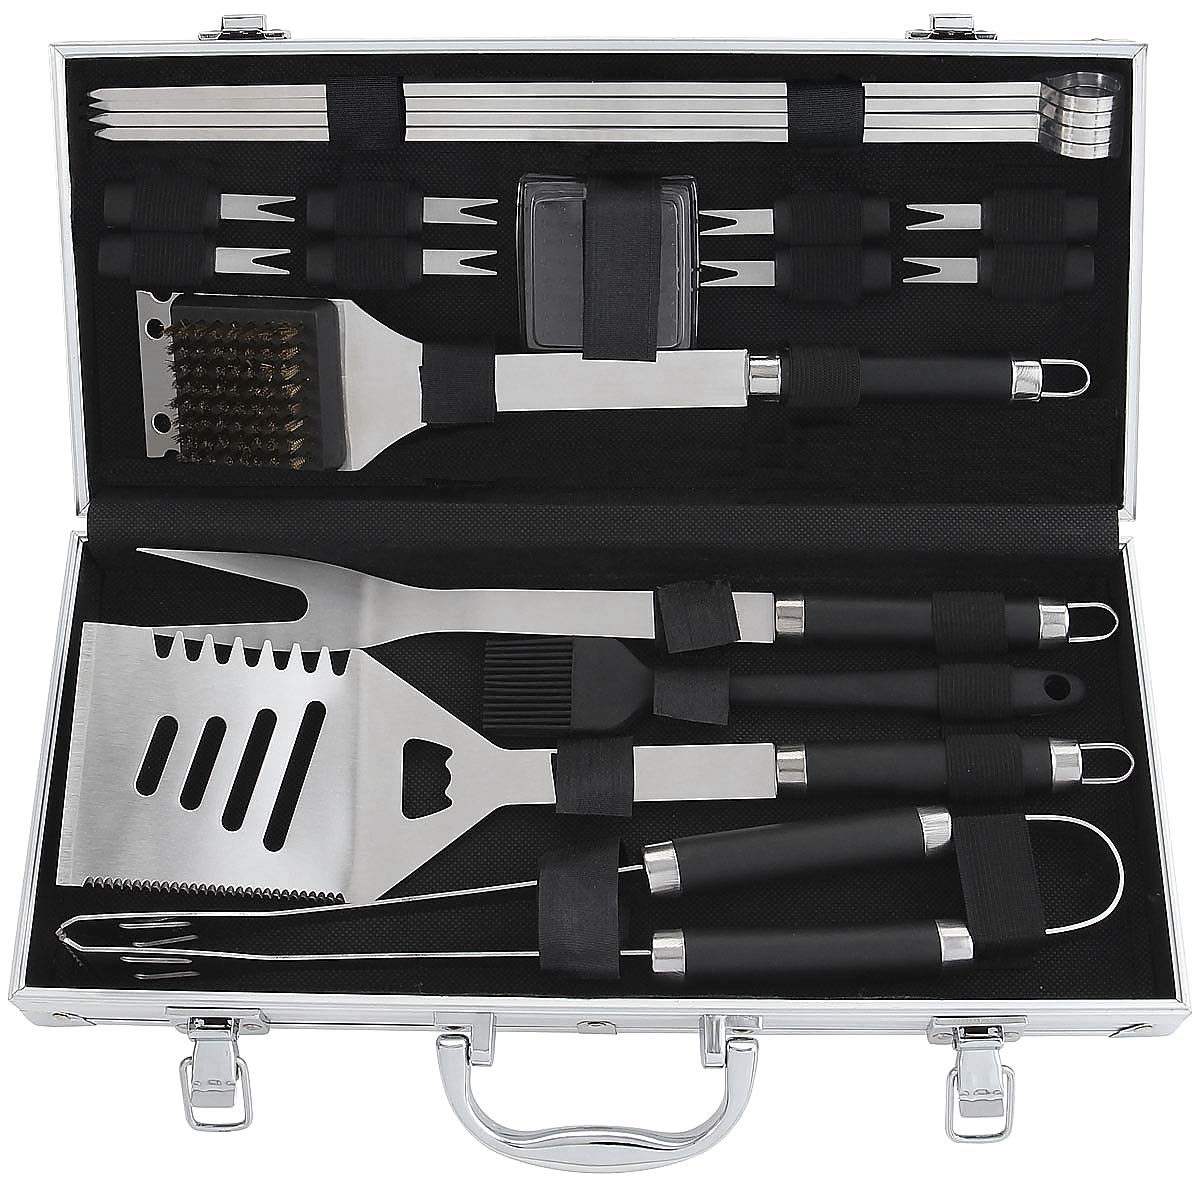 POLIGO 19PCS BBQ Accessories Set Stainless Steel Barbecue Grilling Utensils Kit Set with Aluminum Case for Camping – Premium BBQ Grill Tools Kit – Ideal BBQ Gifts Set for Birthday Christmas Men Women